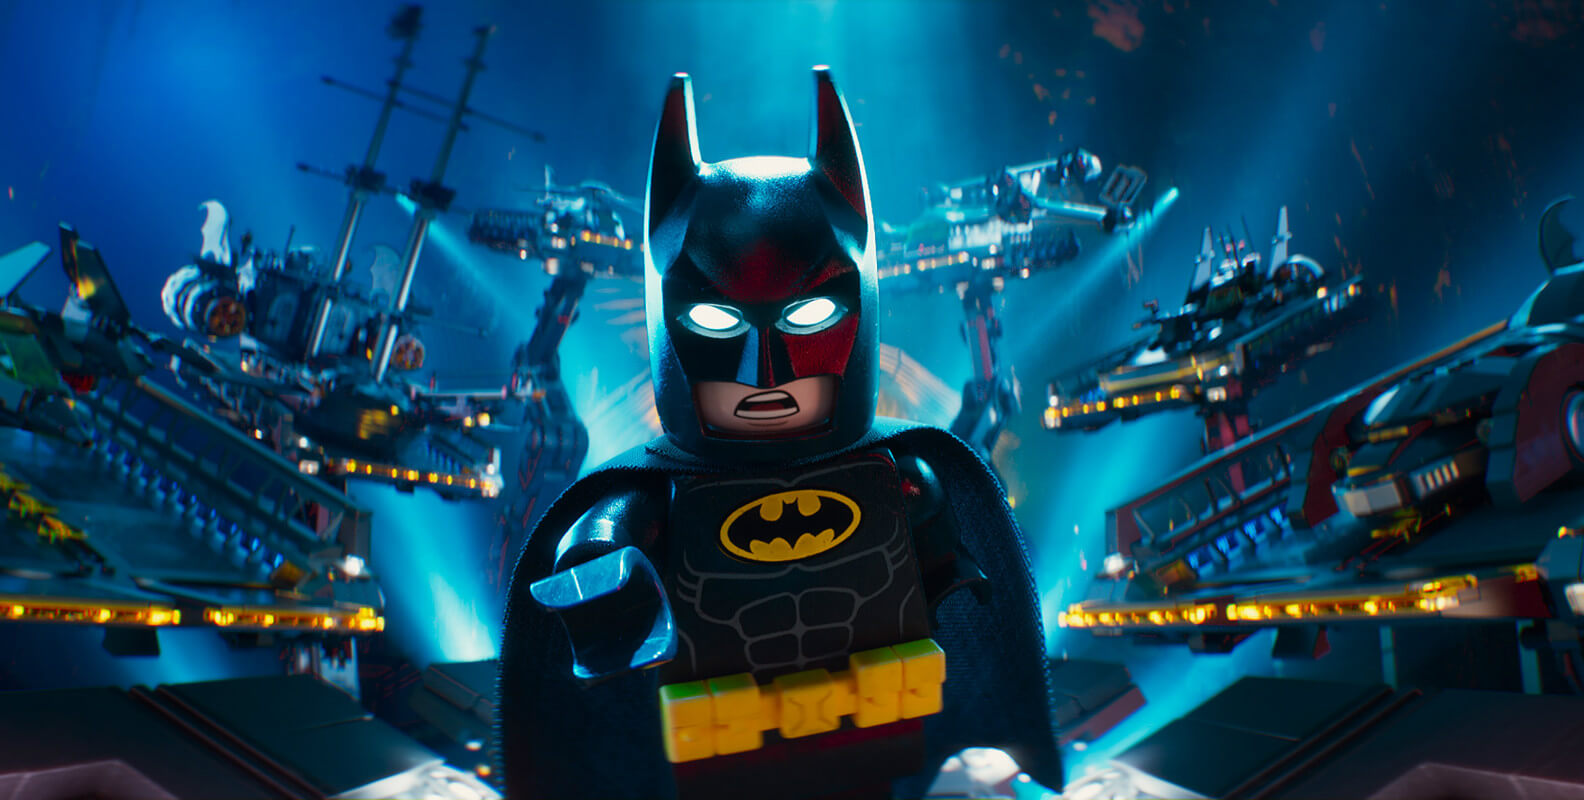 The Lego Batman Movie 2017 Spoiler Free Movie Review